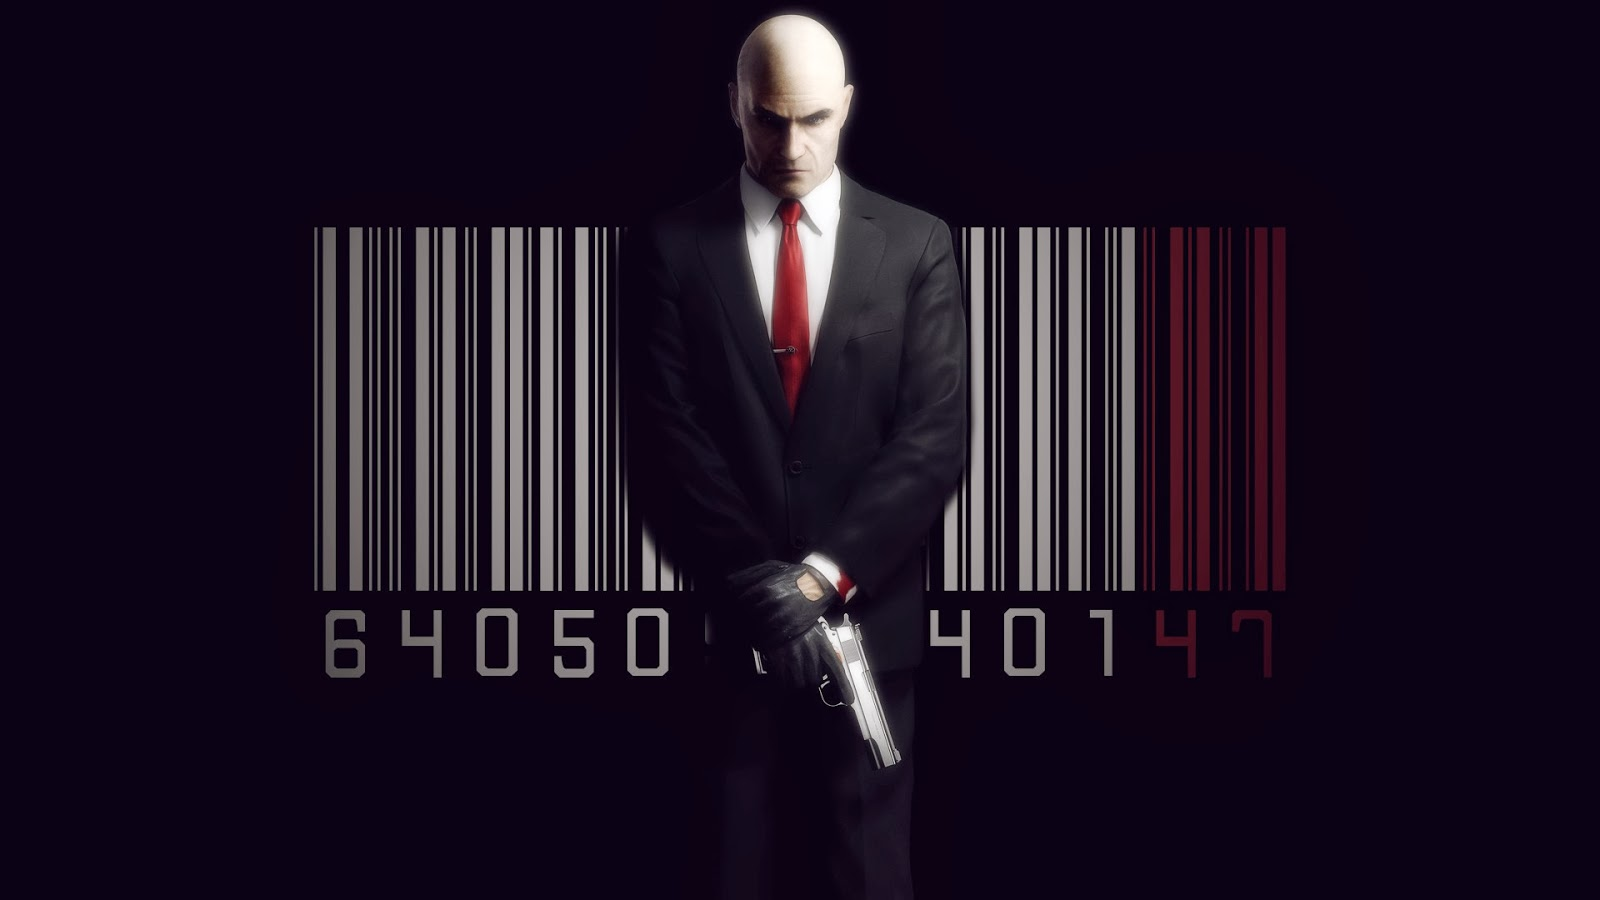 The hitman agent 47 is back new movie new hitman coming soon ent3rtain me - Hitman 47 wallpaper ...